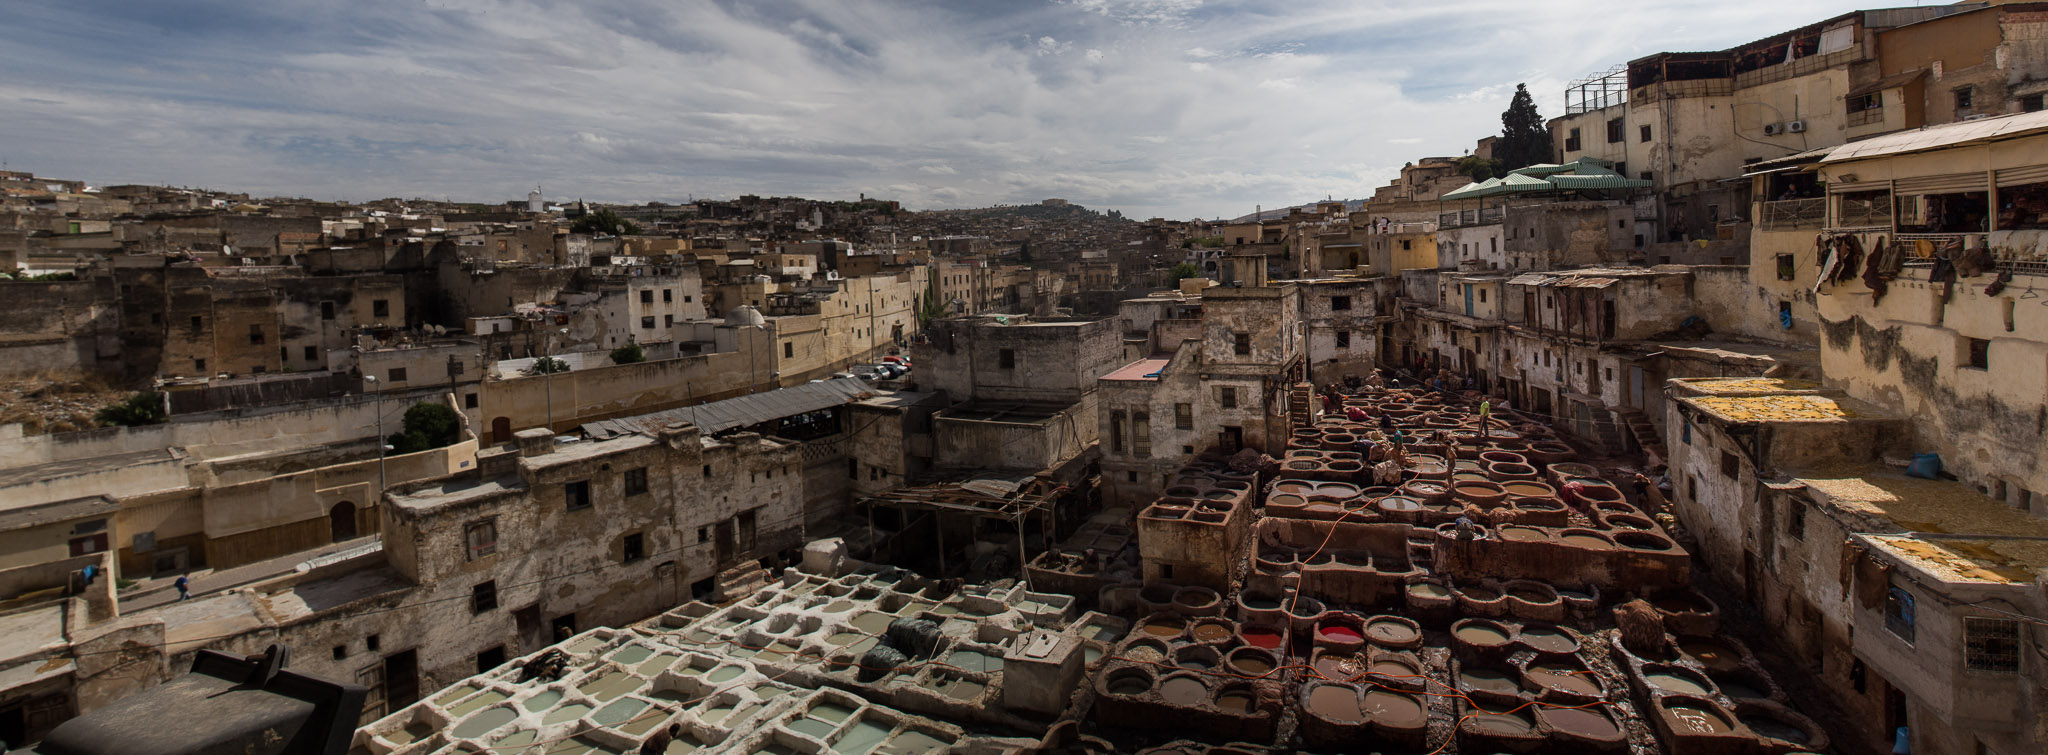 A Tannery in Fez